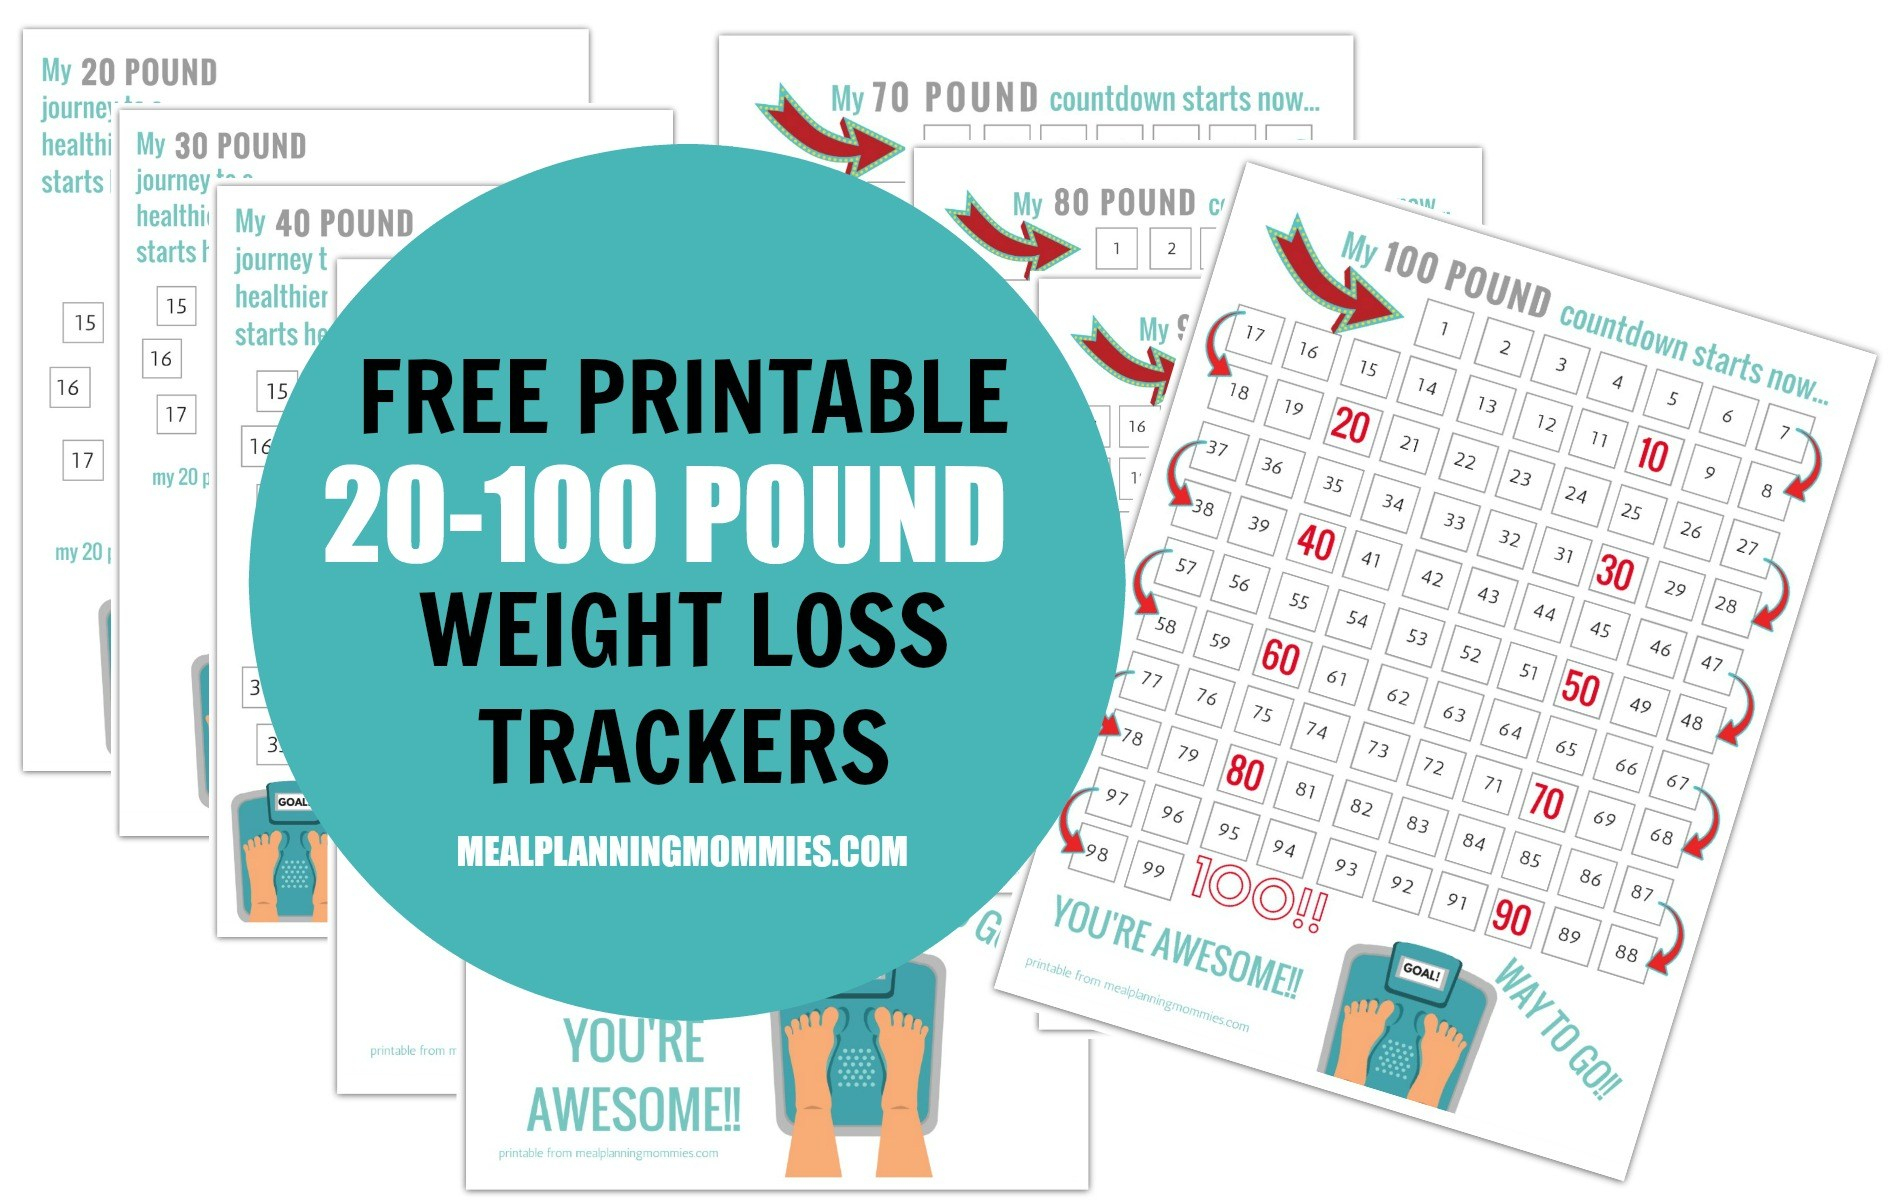 Free Printable 20-100 Pound Weight Loss Trackers - Meal Planning Mommies - Printable Weight Loss Charts Free